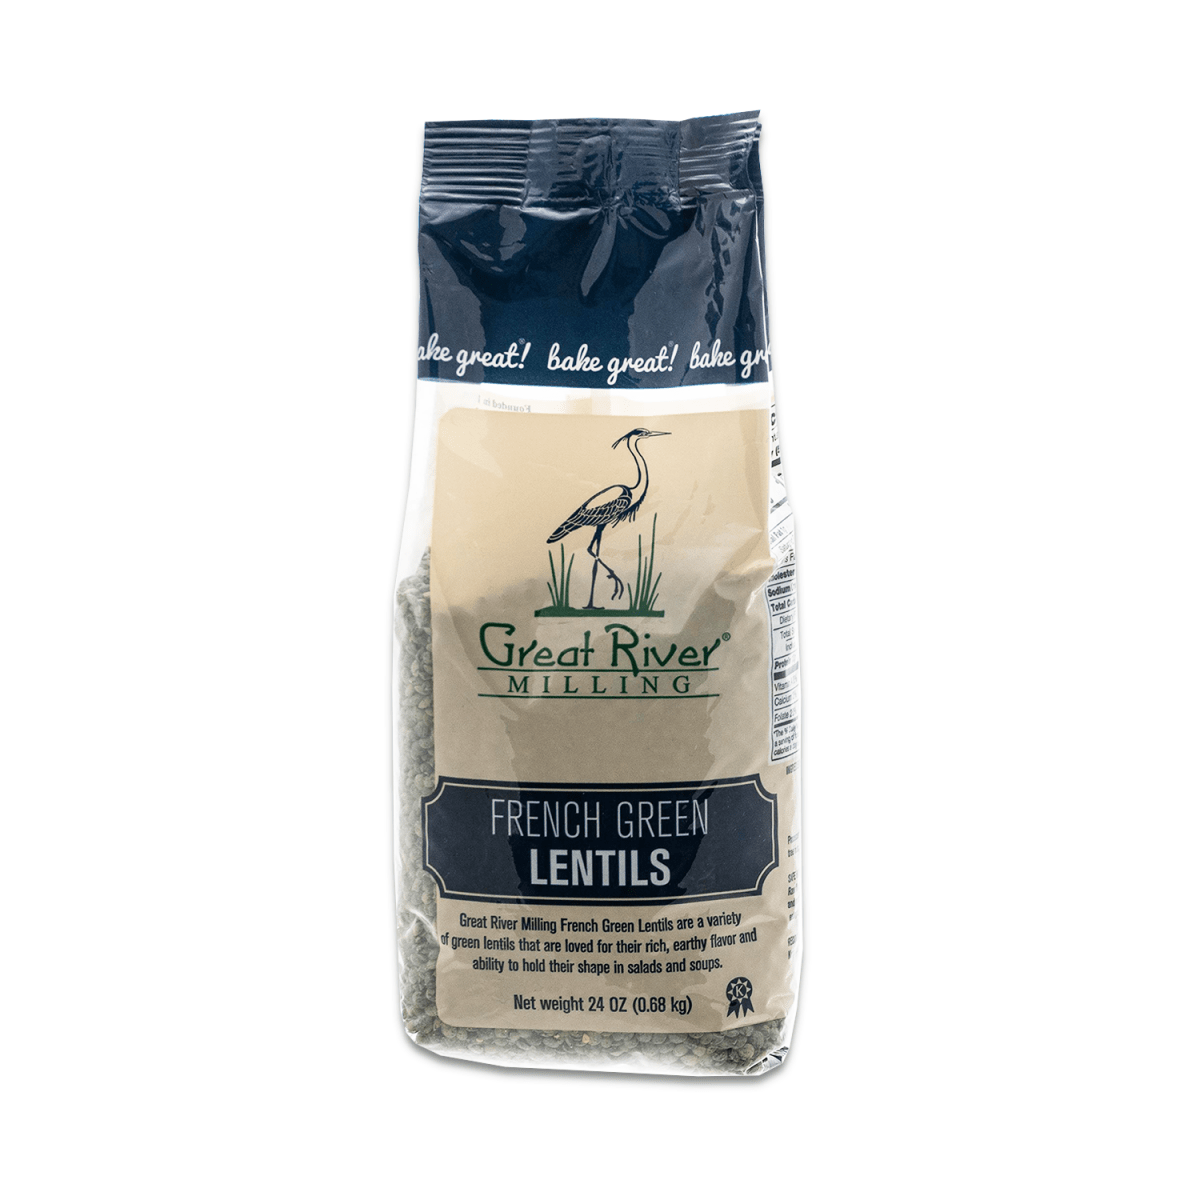 Great River Milling French Green Lentils